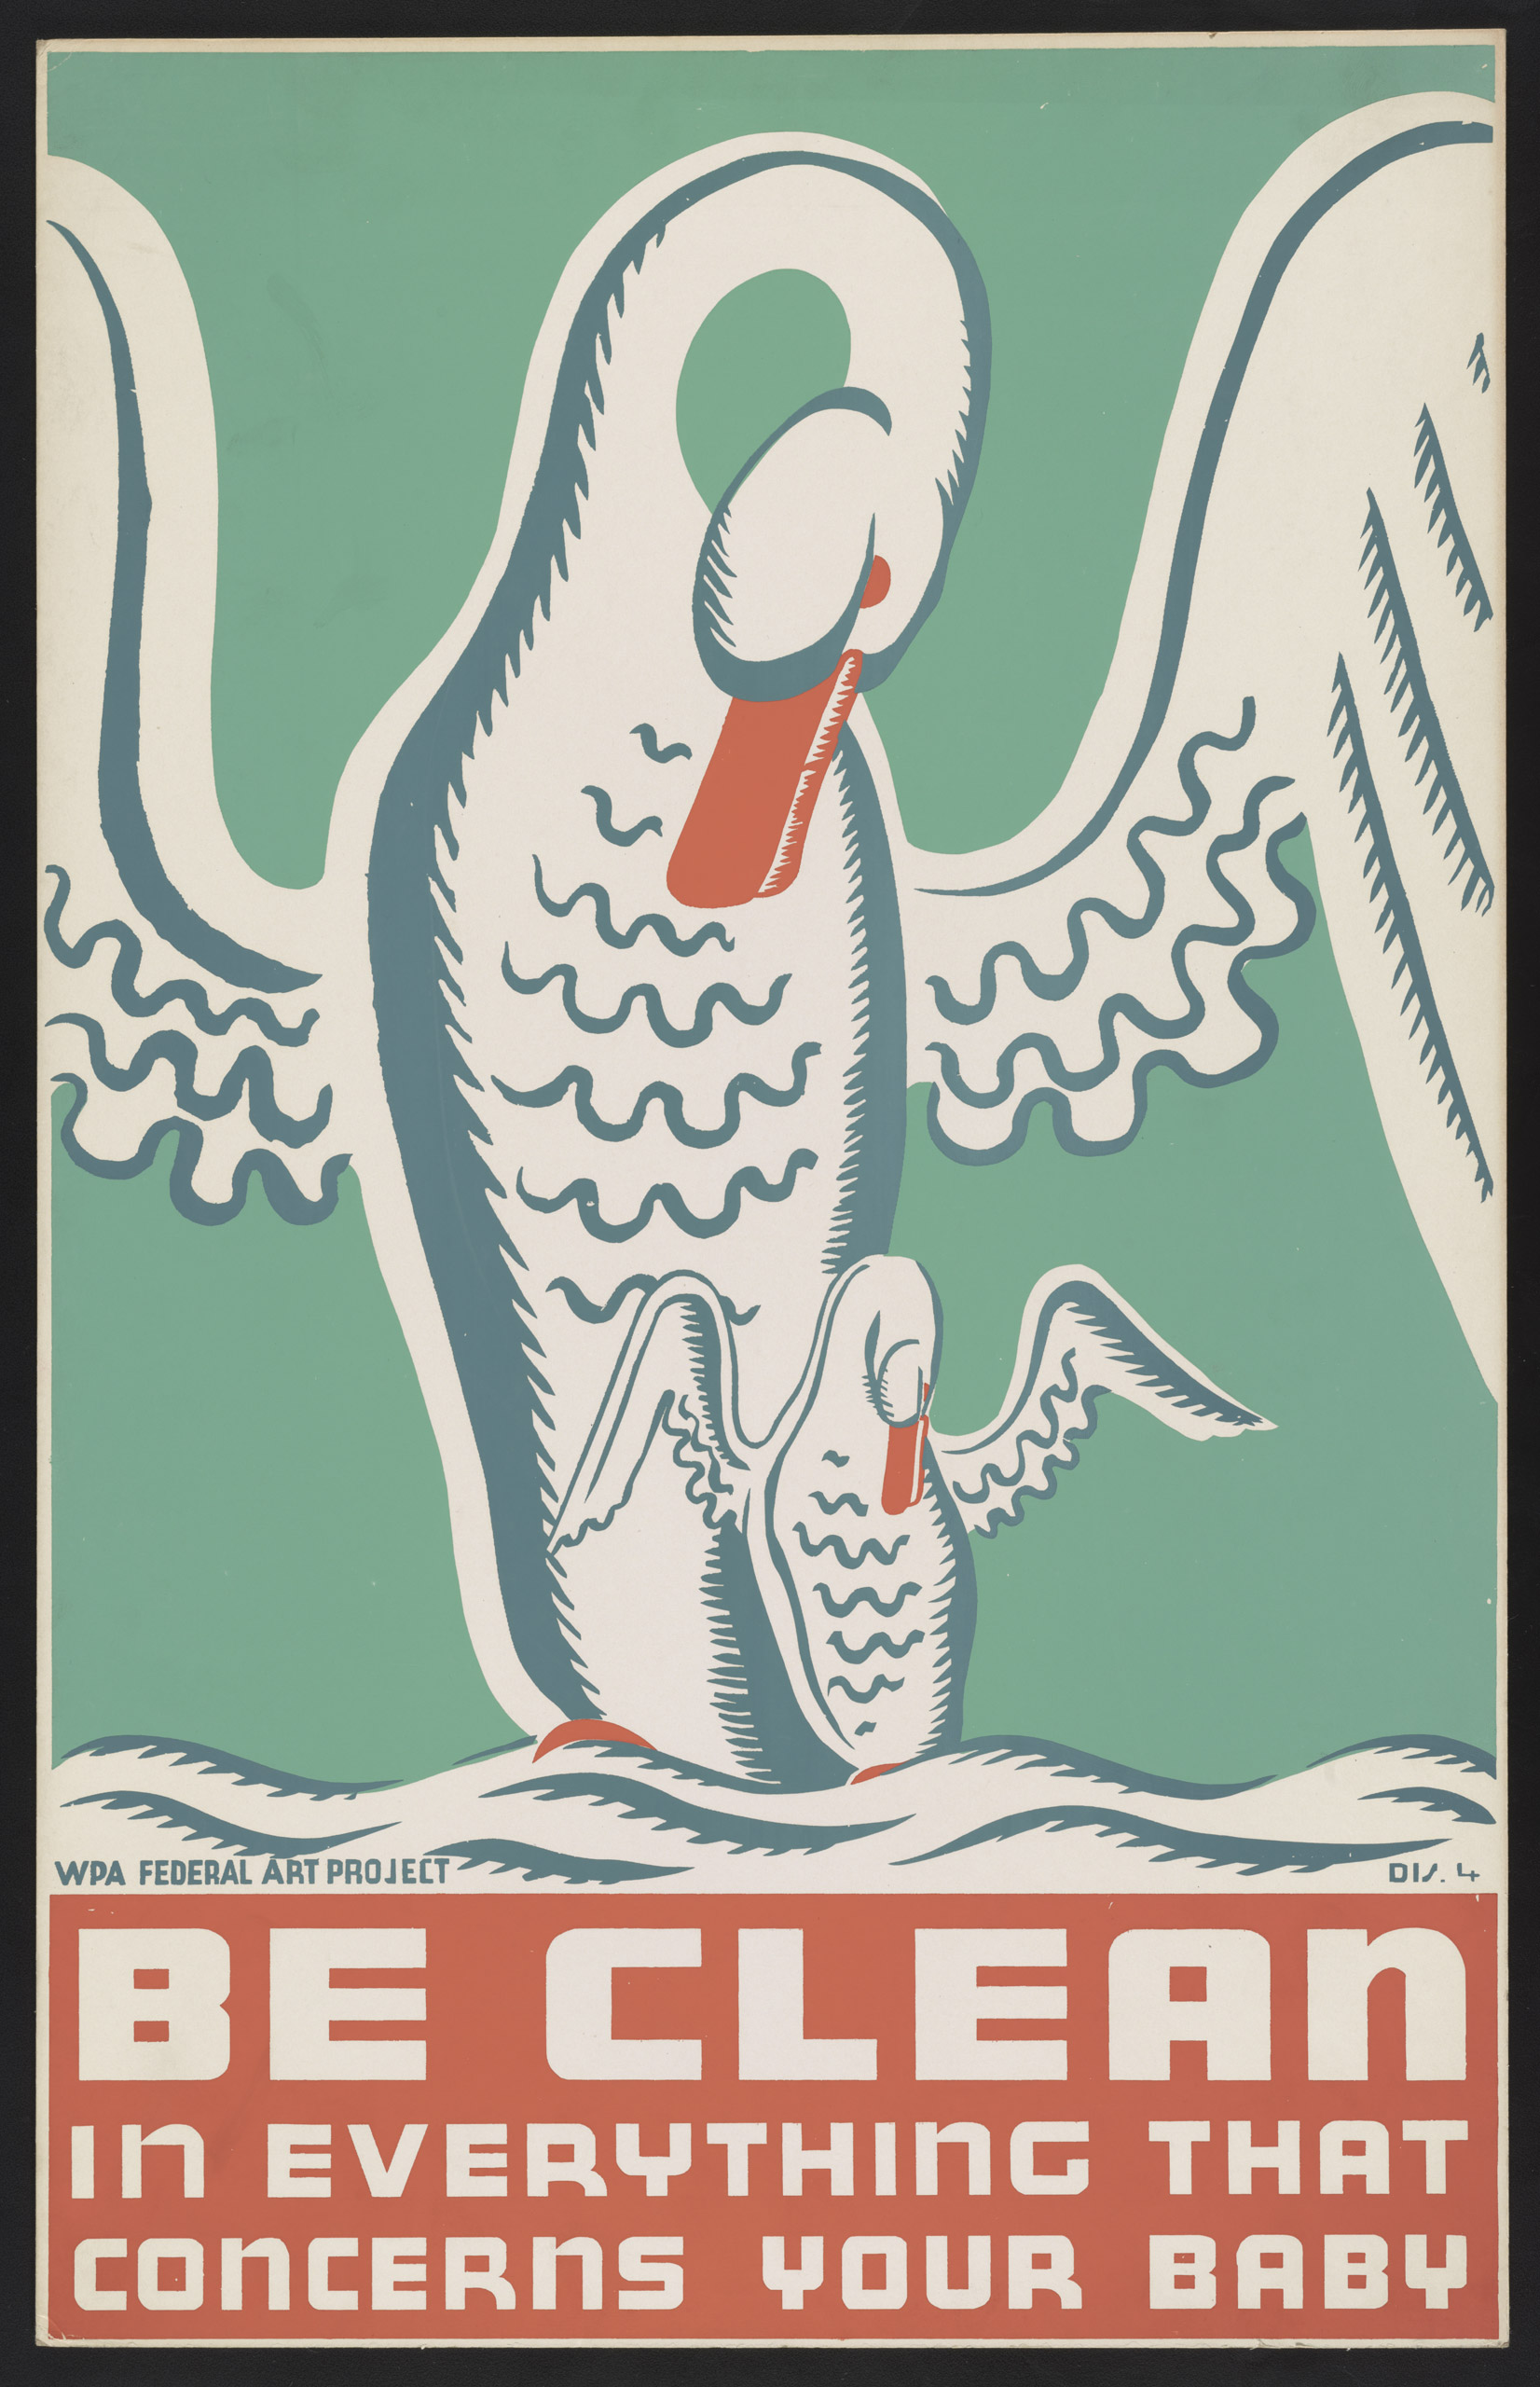 Poster promoting cleanliness and proper child care, showing swan with cygnet. Created between 1936 and 1939.